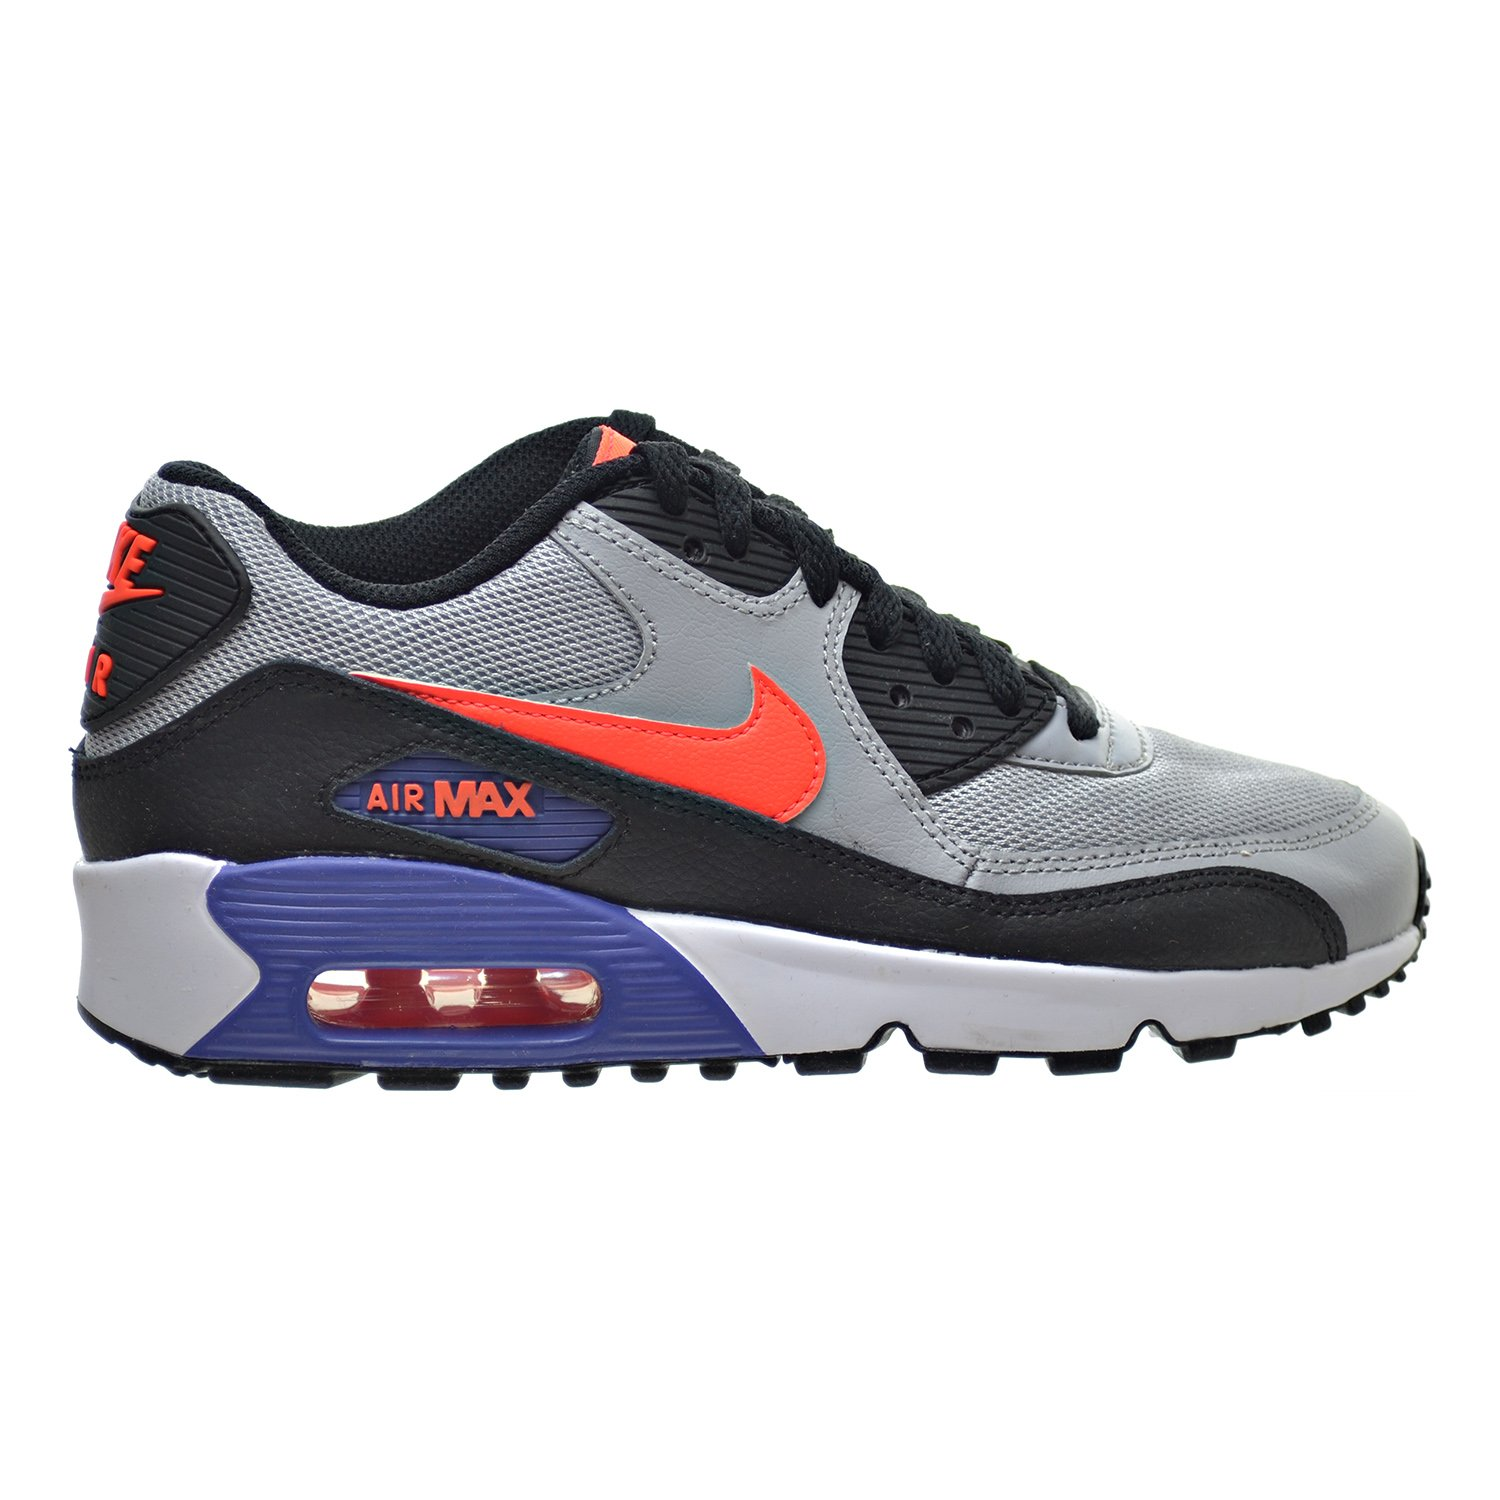 online retailer e8297 3214f Amazon.com   Nike Air Max 90 Mesh(GS) Big Kids Shoes Wolf Grey Crimson Dark  Purple 833418-002 (6 M US)   Running